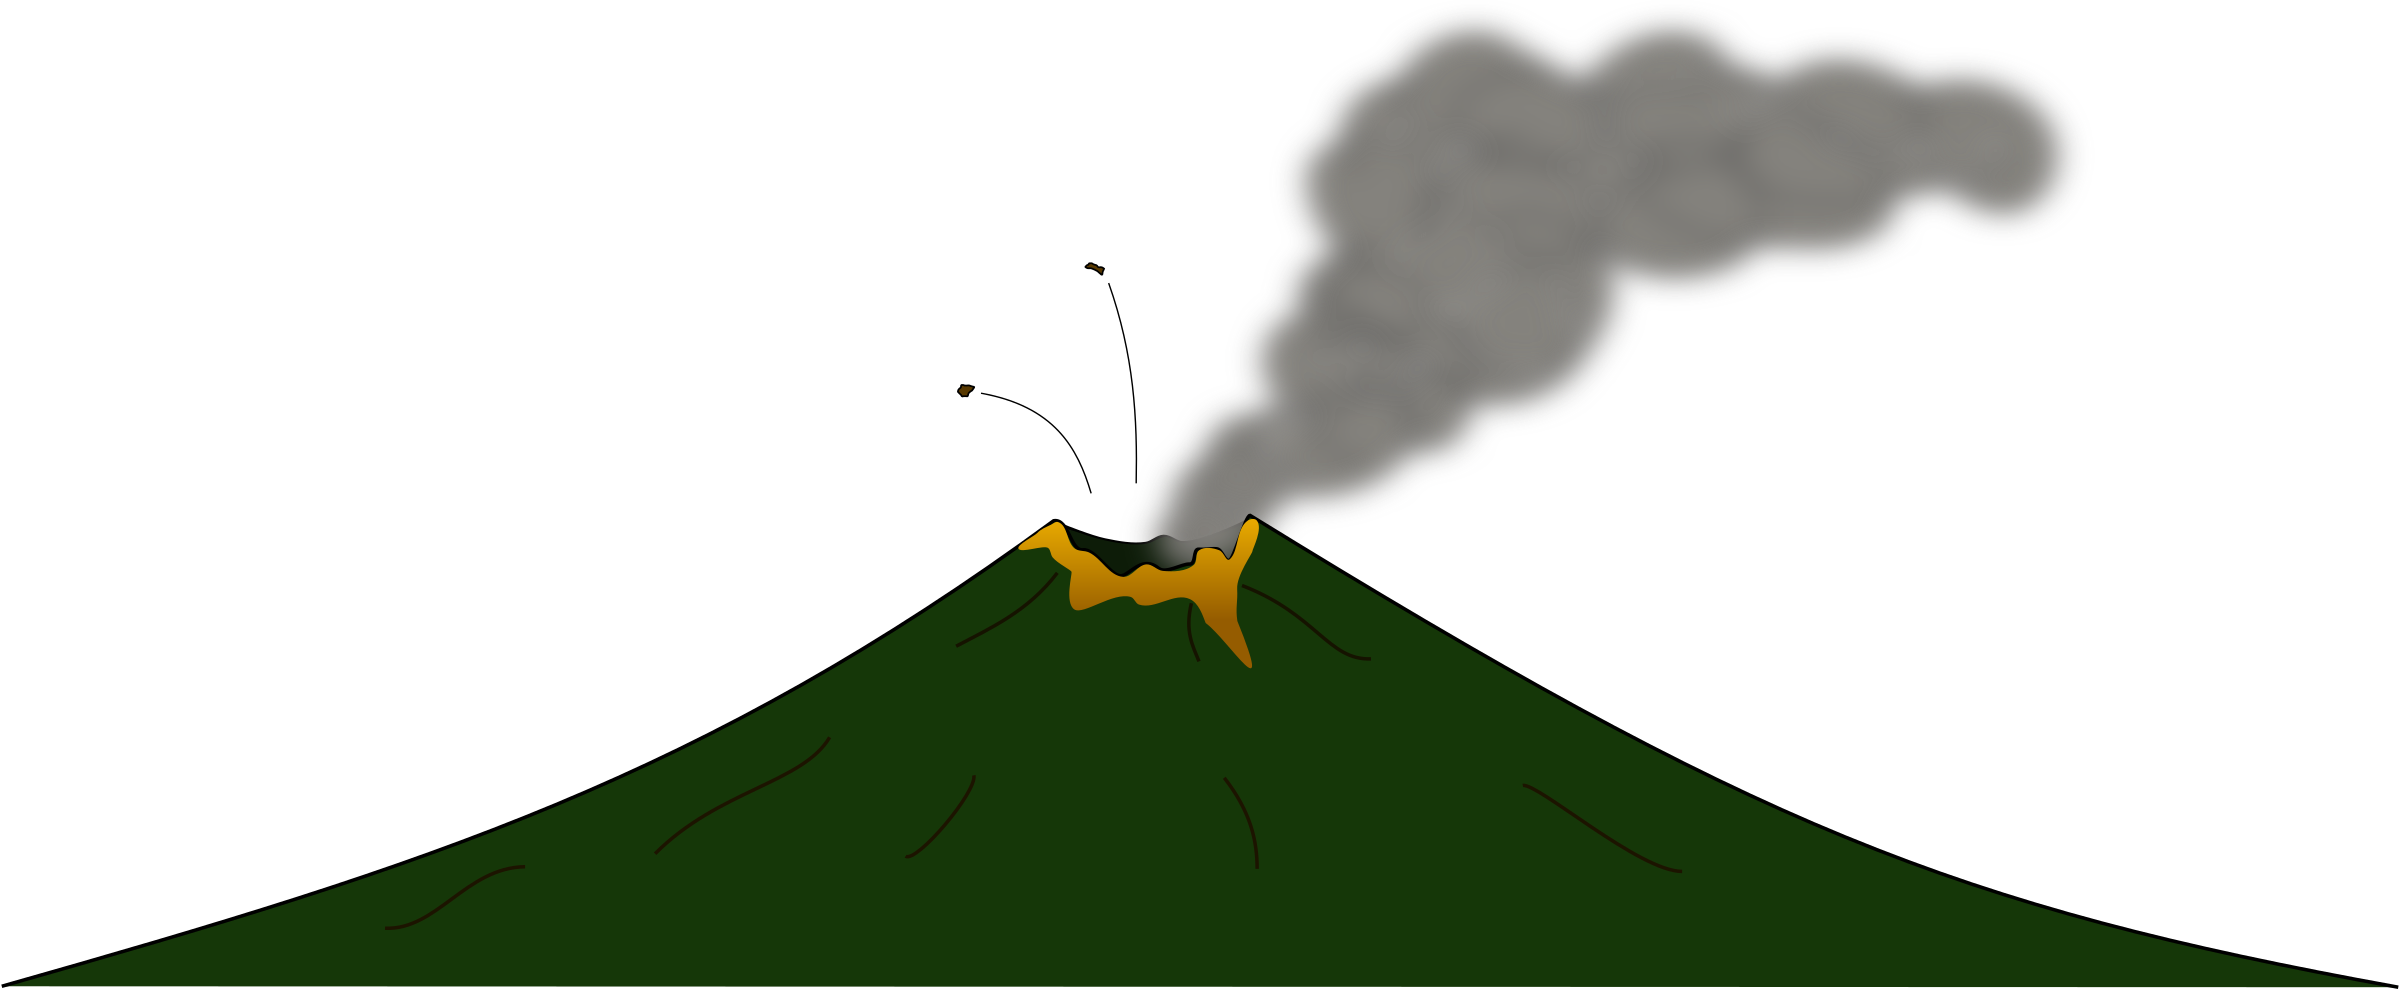 Tiki clipart volcano. Png transparent images all